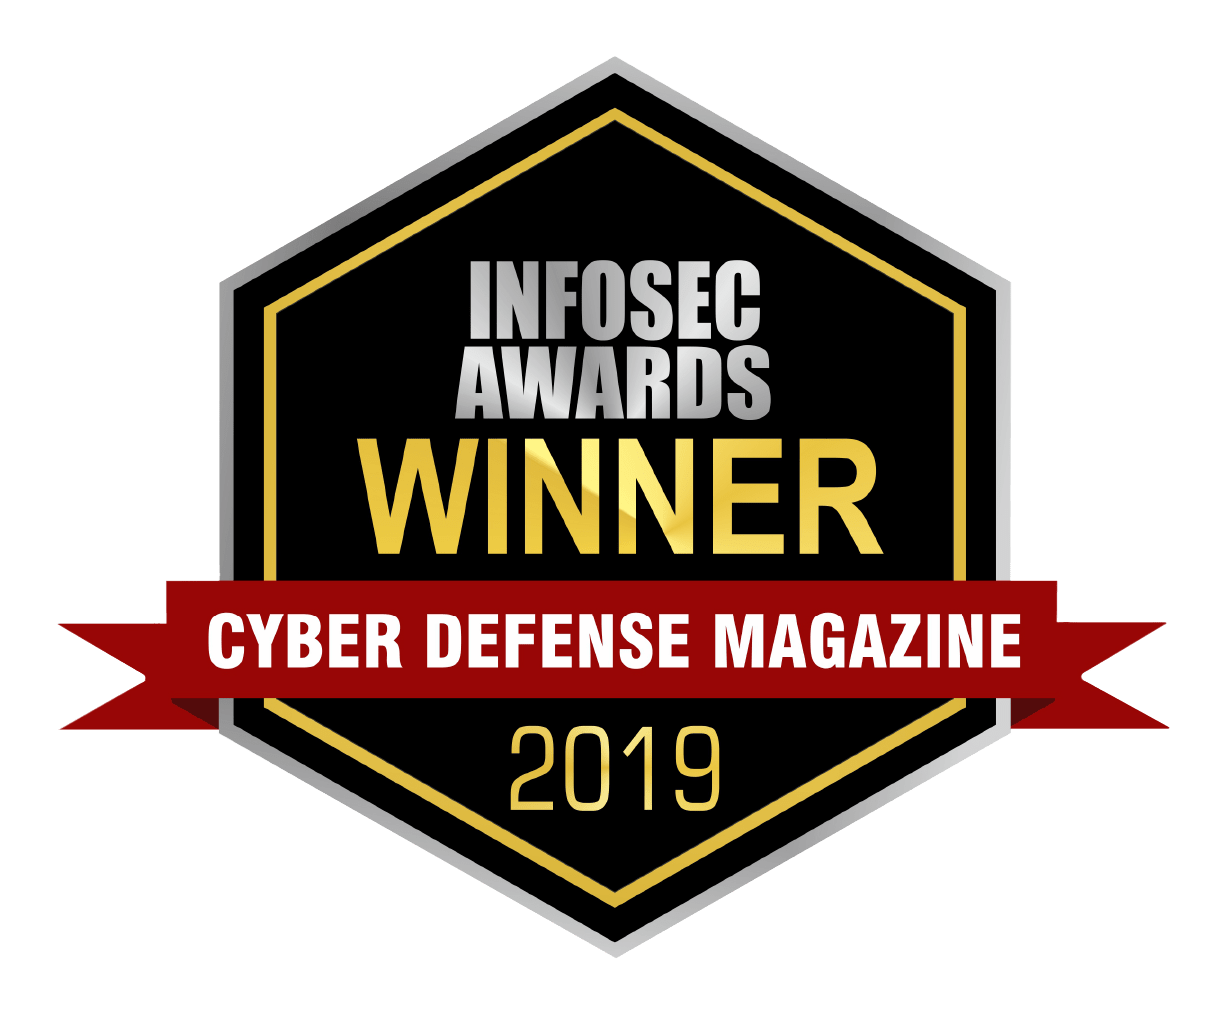 Nozomi Networks Wins Two Cyber Defense Magazine Infosec Awards at RSA Conference 2019